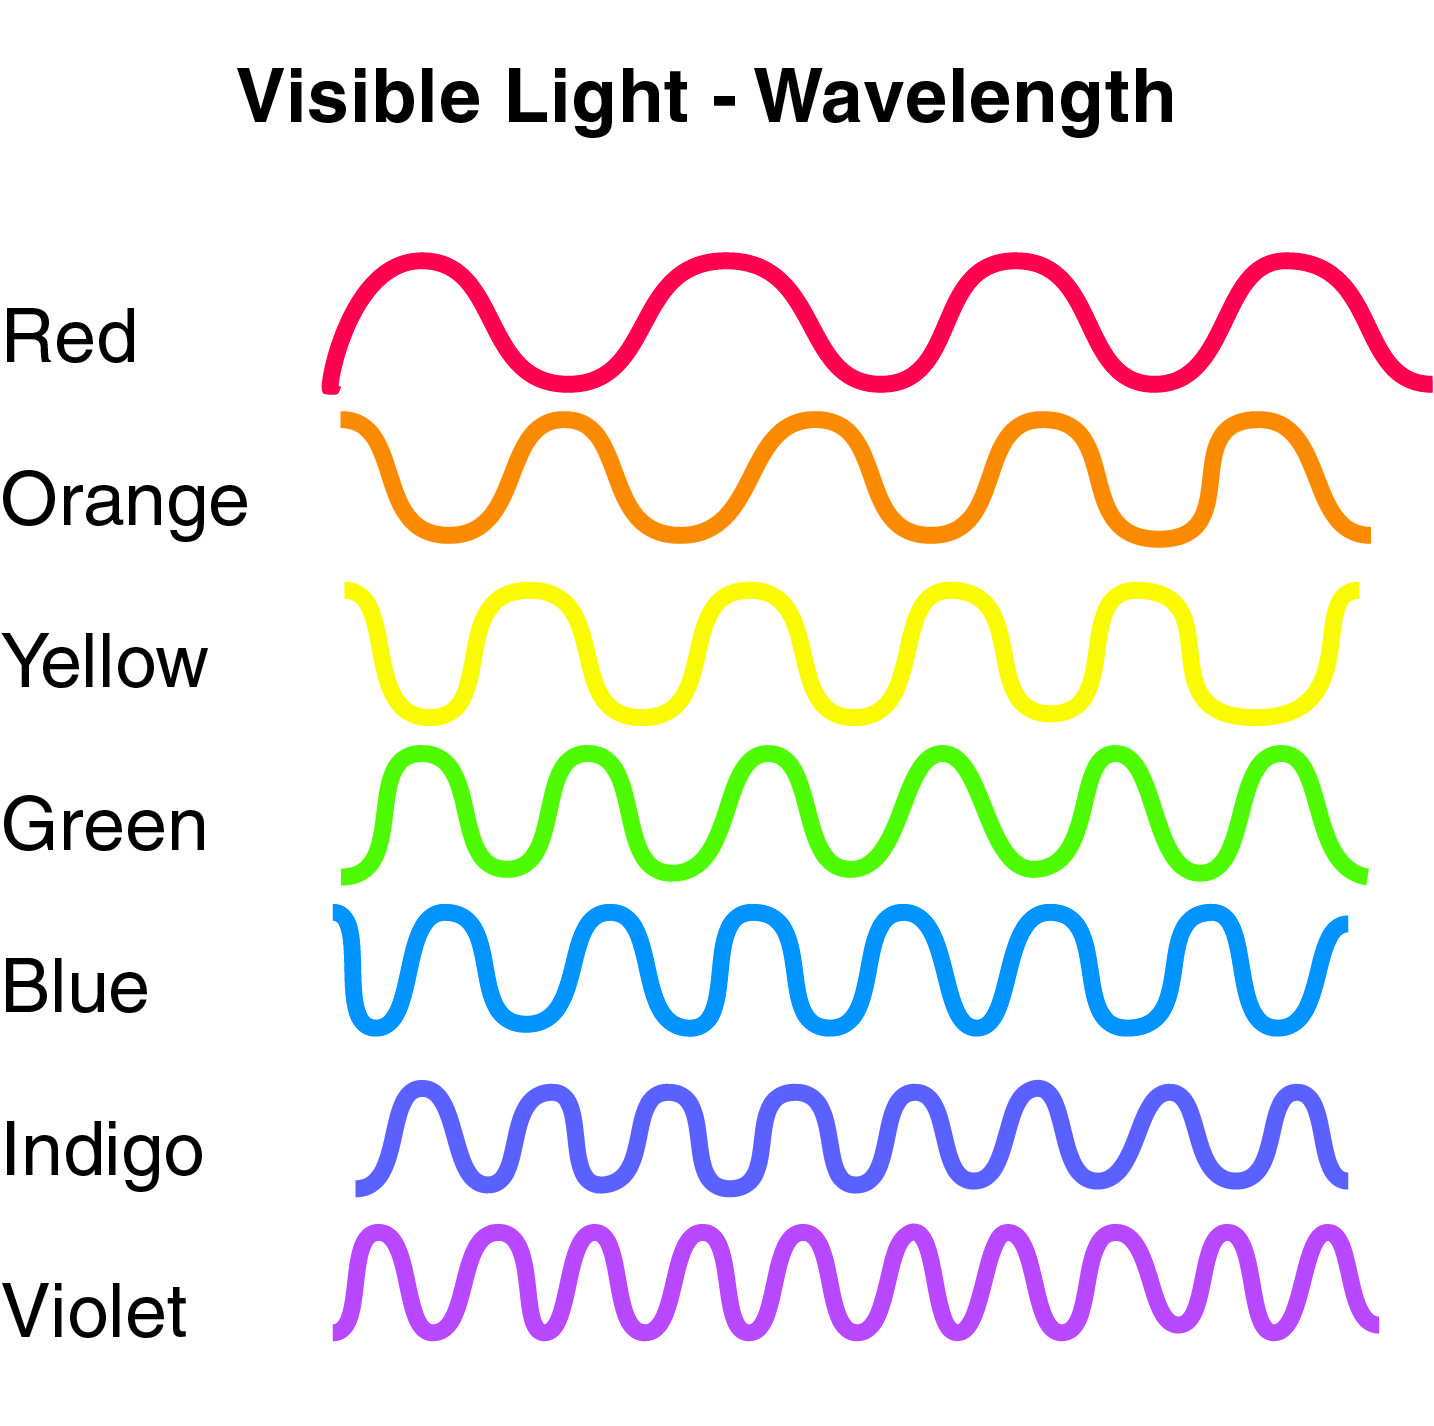 Wavelength The Distance From The Peak Of One Light Or Sound Wave To The Peak Of The Next